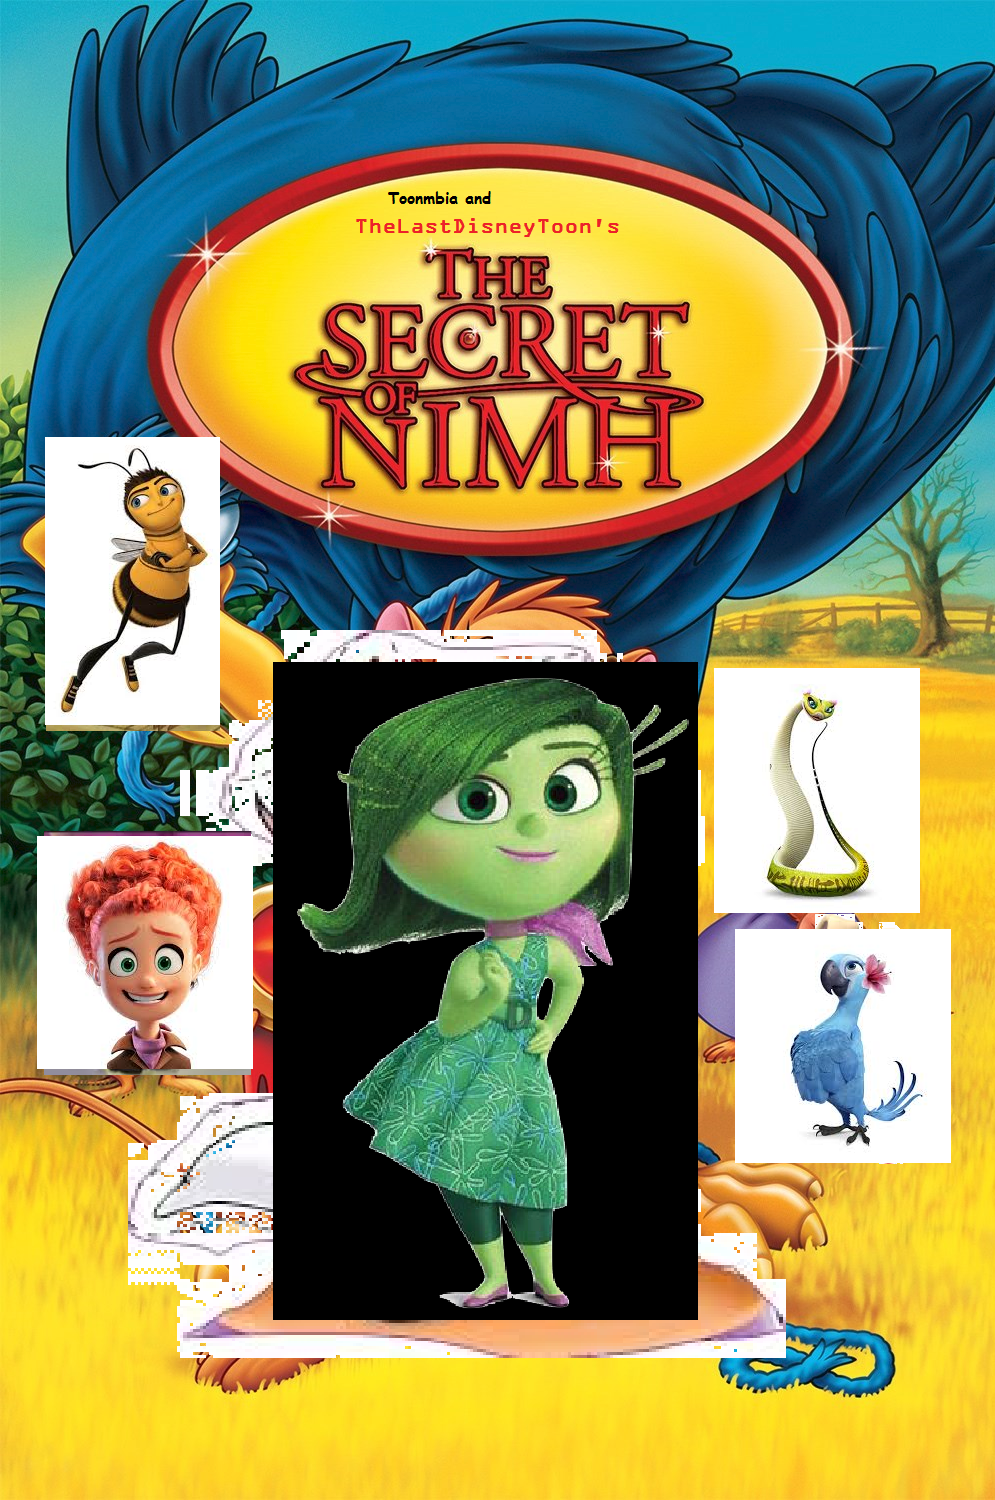 The Secret of NIMH (TheLastDisneyToon and Toonmbia's Style)